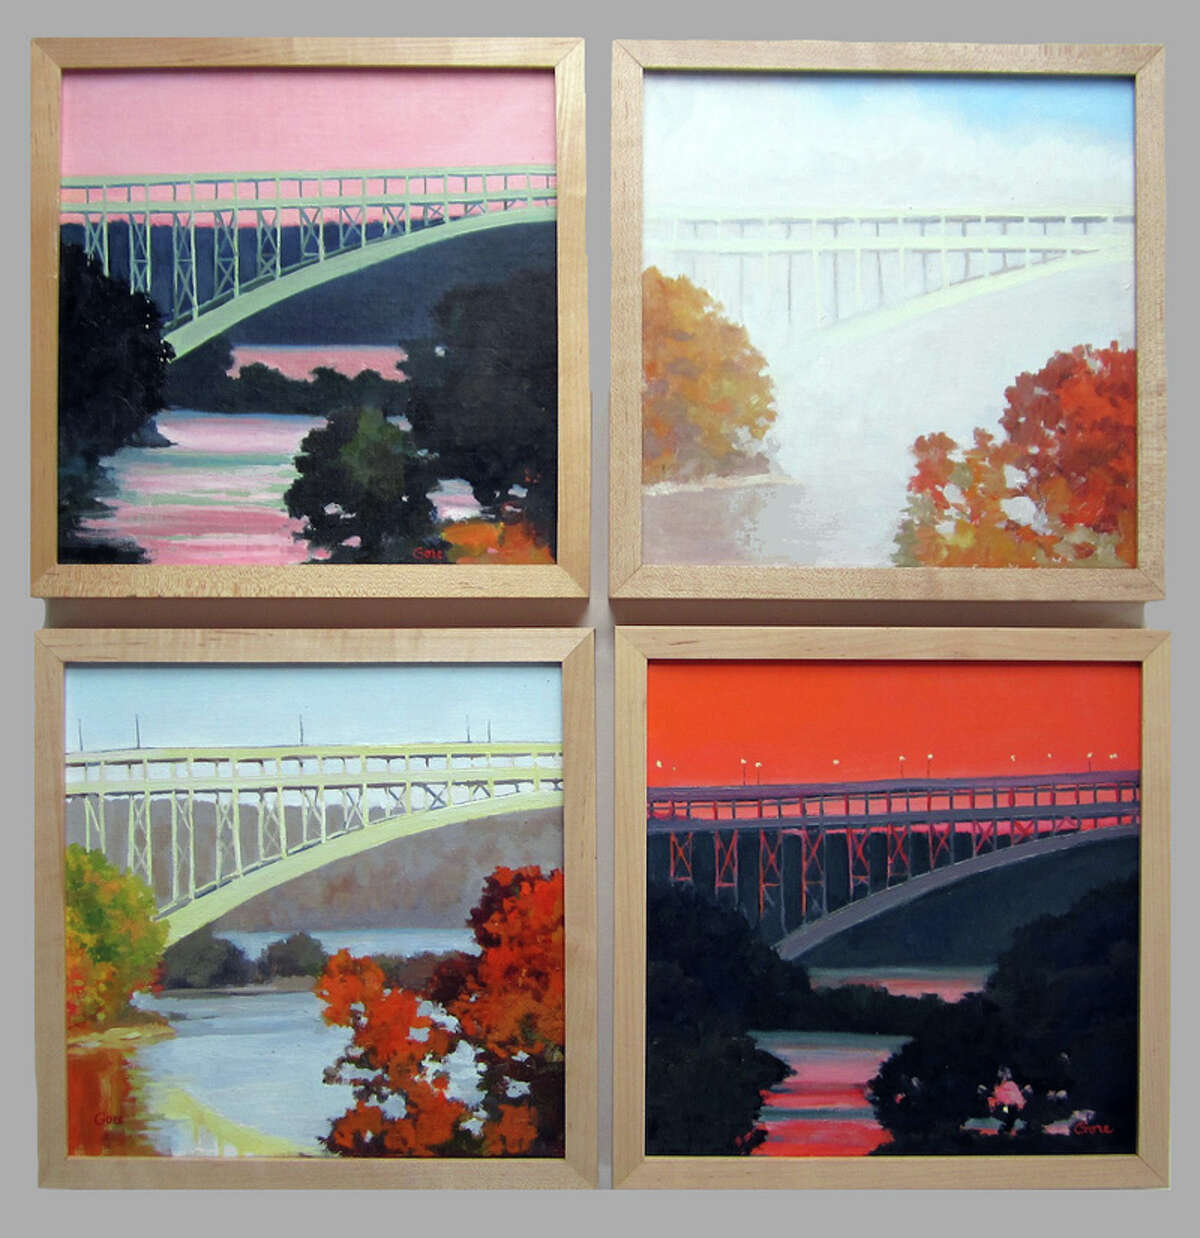 WINDHAM FINE ARTS ?Bridge Studies? by Elissa Gore are among the works in ?Barns and Bridges? at Windham Fine Arts Saturday through March 31. There will be a reception from 4 to 6 p.m. on Saturday.